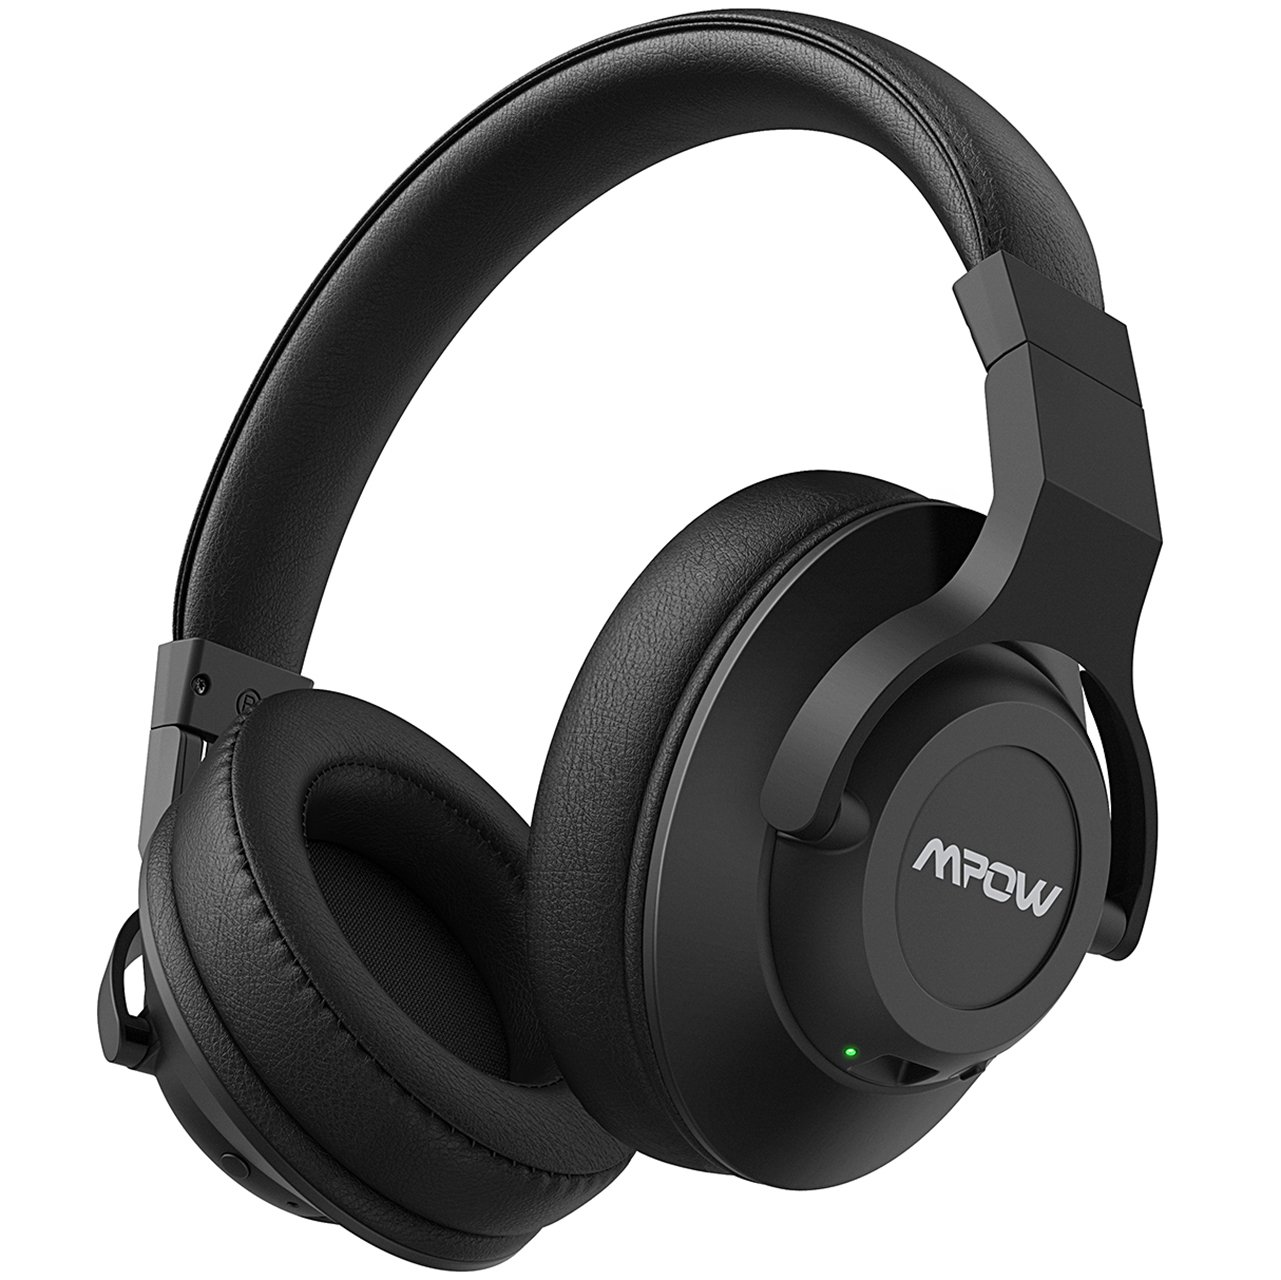 Mpow H12 Active Noise Cancelling Bluetooth Headphones, Over Ear Wireless Headset w/Mic, Wireless& Wired Comfortable Foldable Stereo ANC Headphones for PC/Cell Phones/TV Shenzhen Qianhai Patuoxun Network & Technology LTD PXMPBH242AB-V